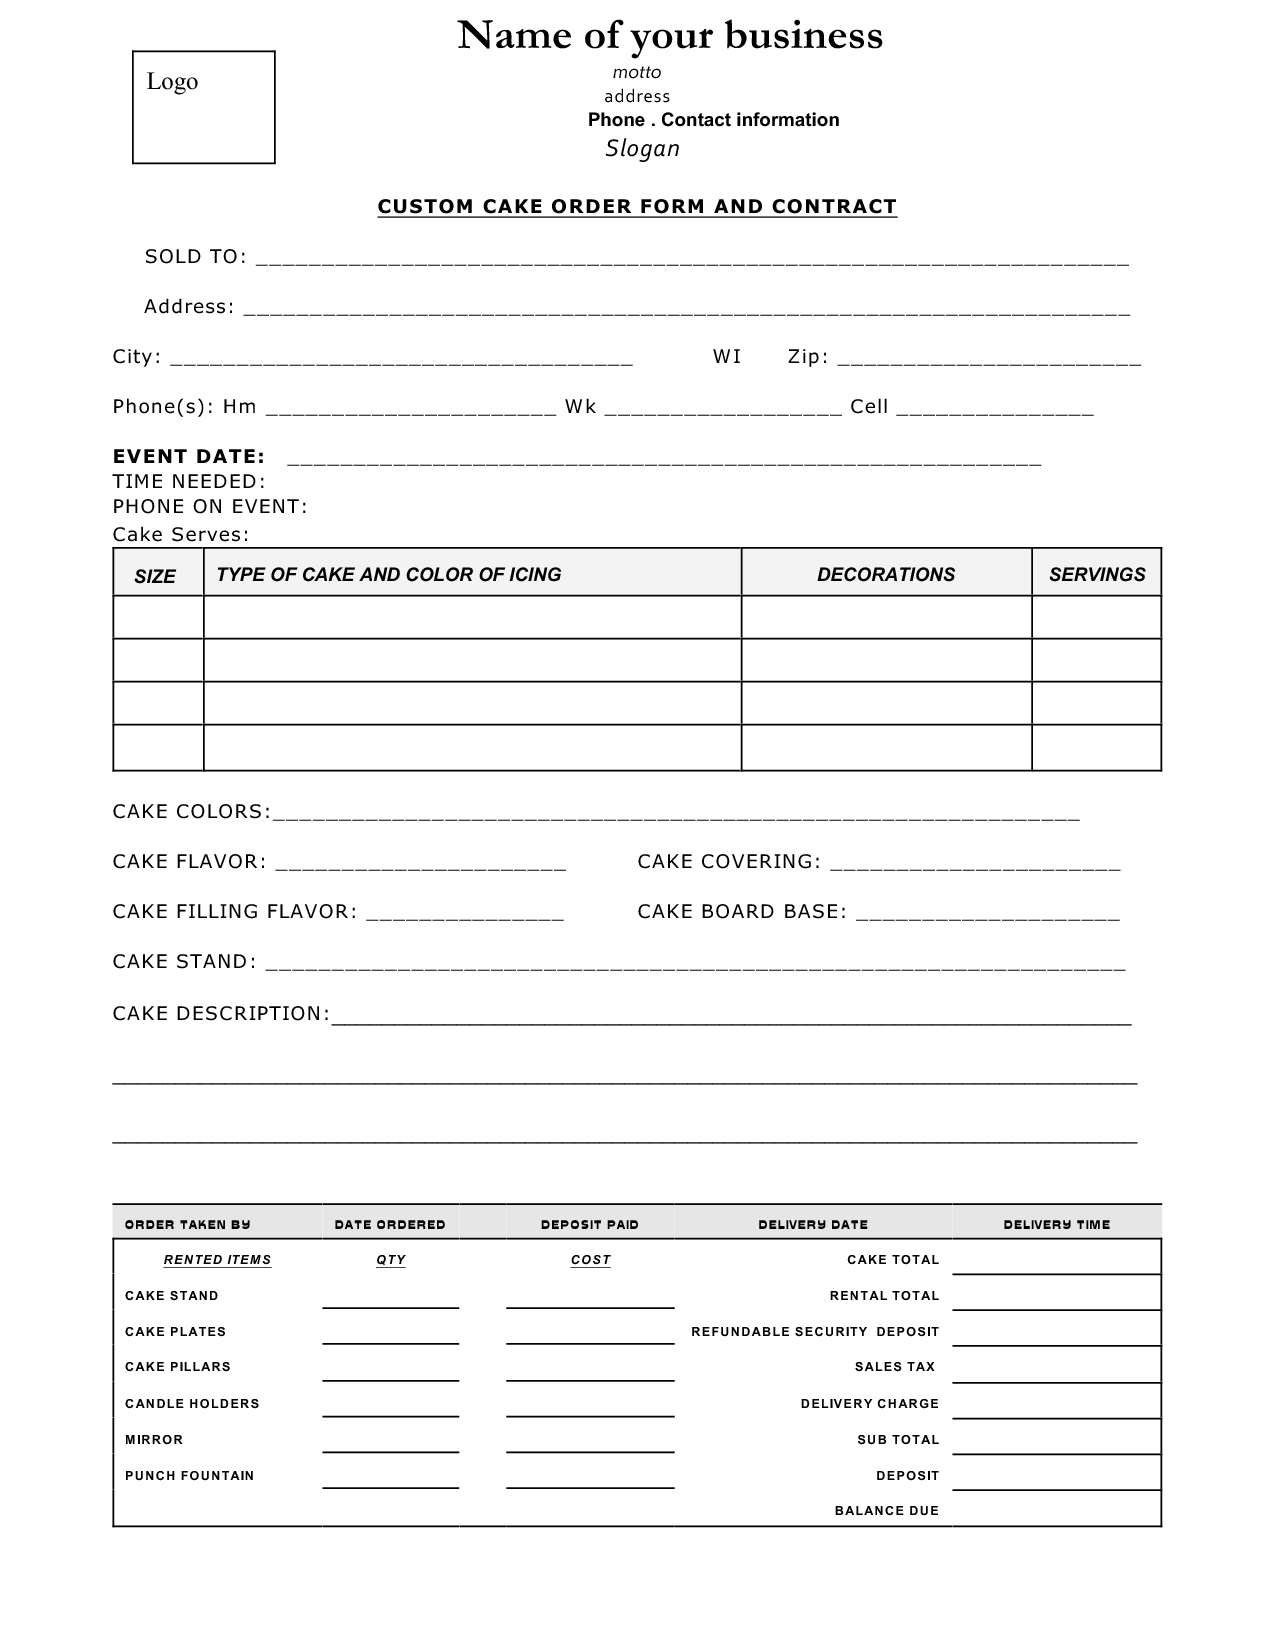 How To Write A Cake Contract  Order Form Cake And Cake Business